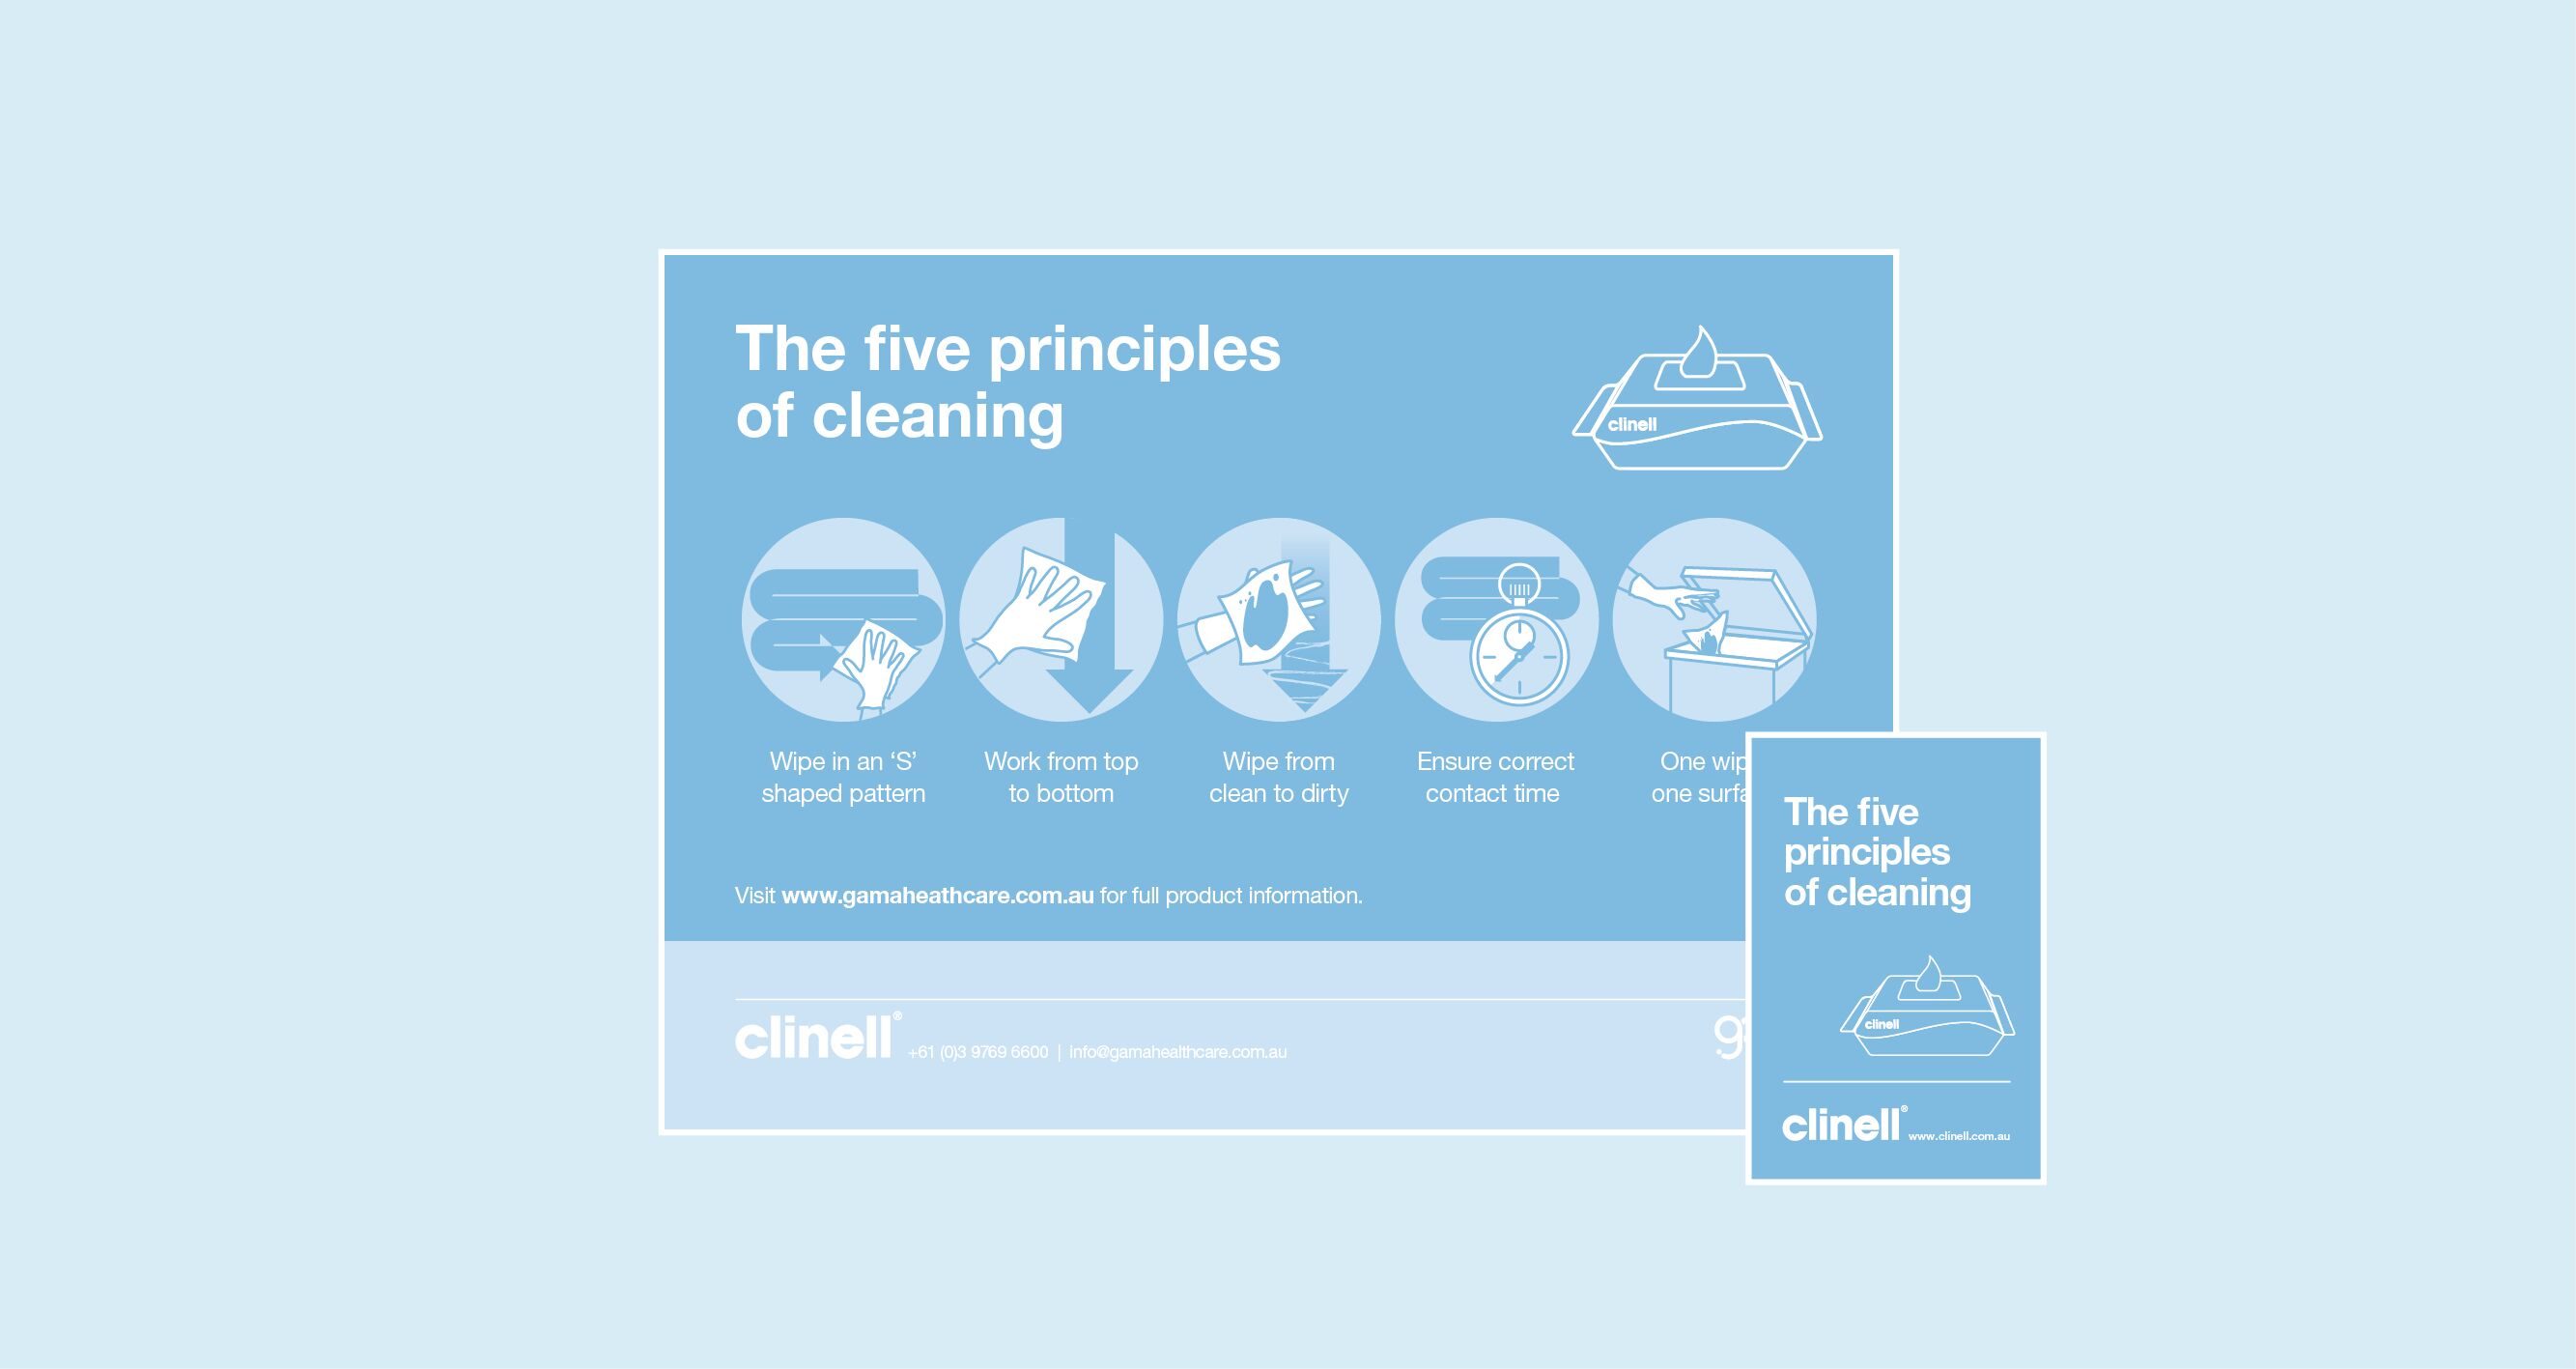 5 Principles of Cleaning Pack downloads – Aus